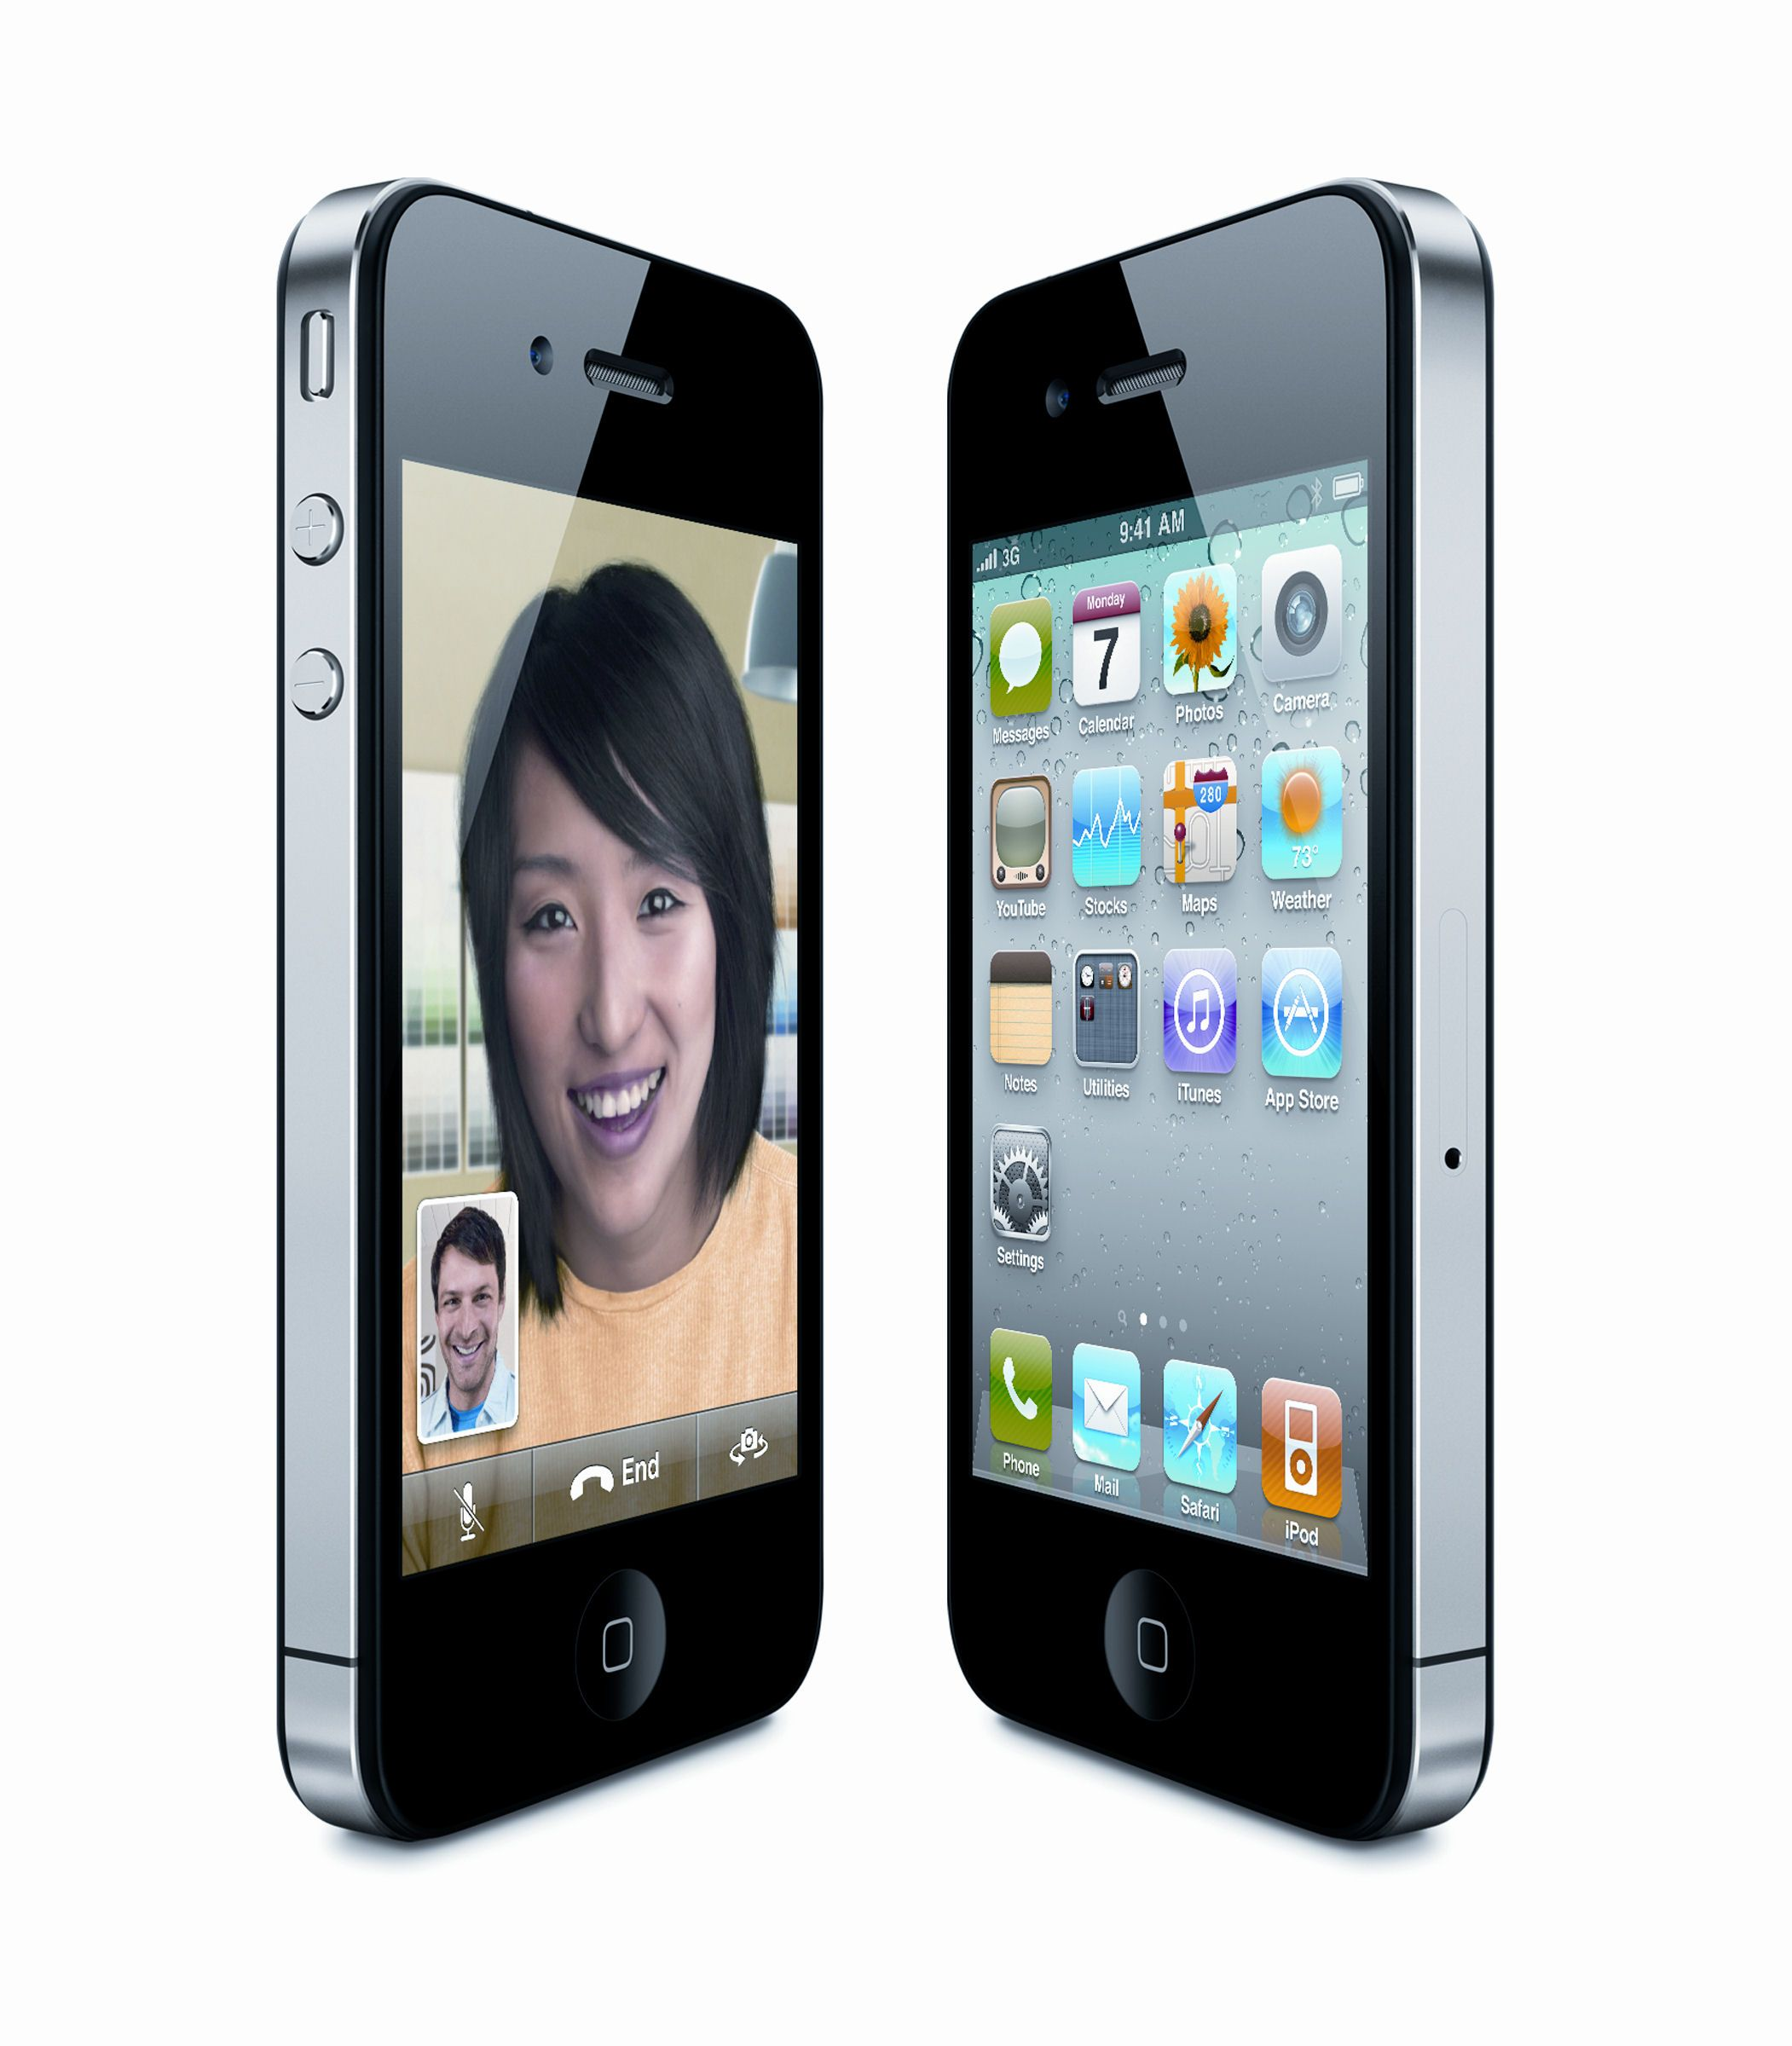 Apple iPhone 4 (With images) Iphone, Apple iphone 4s